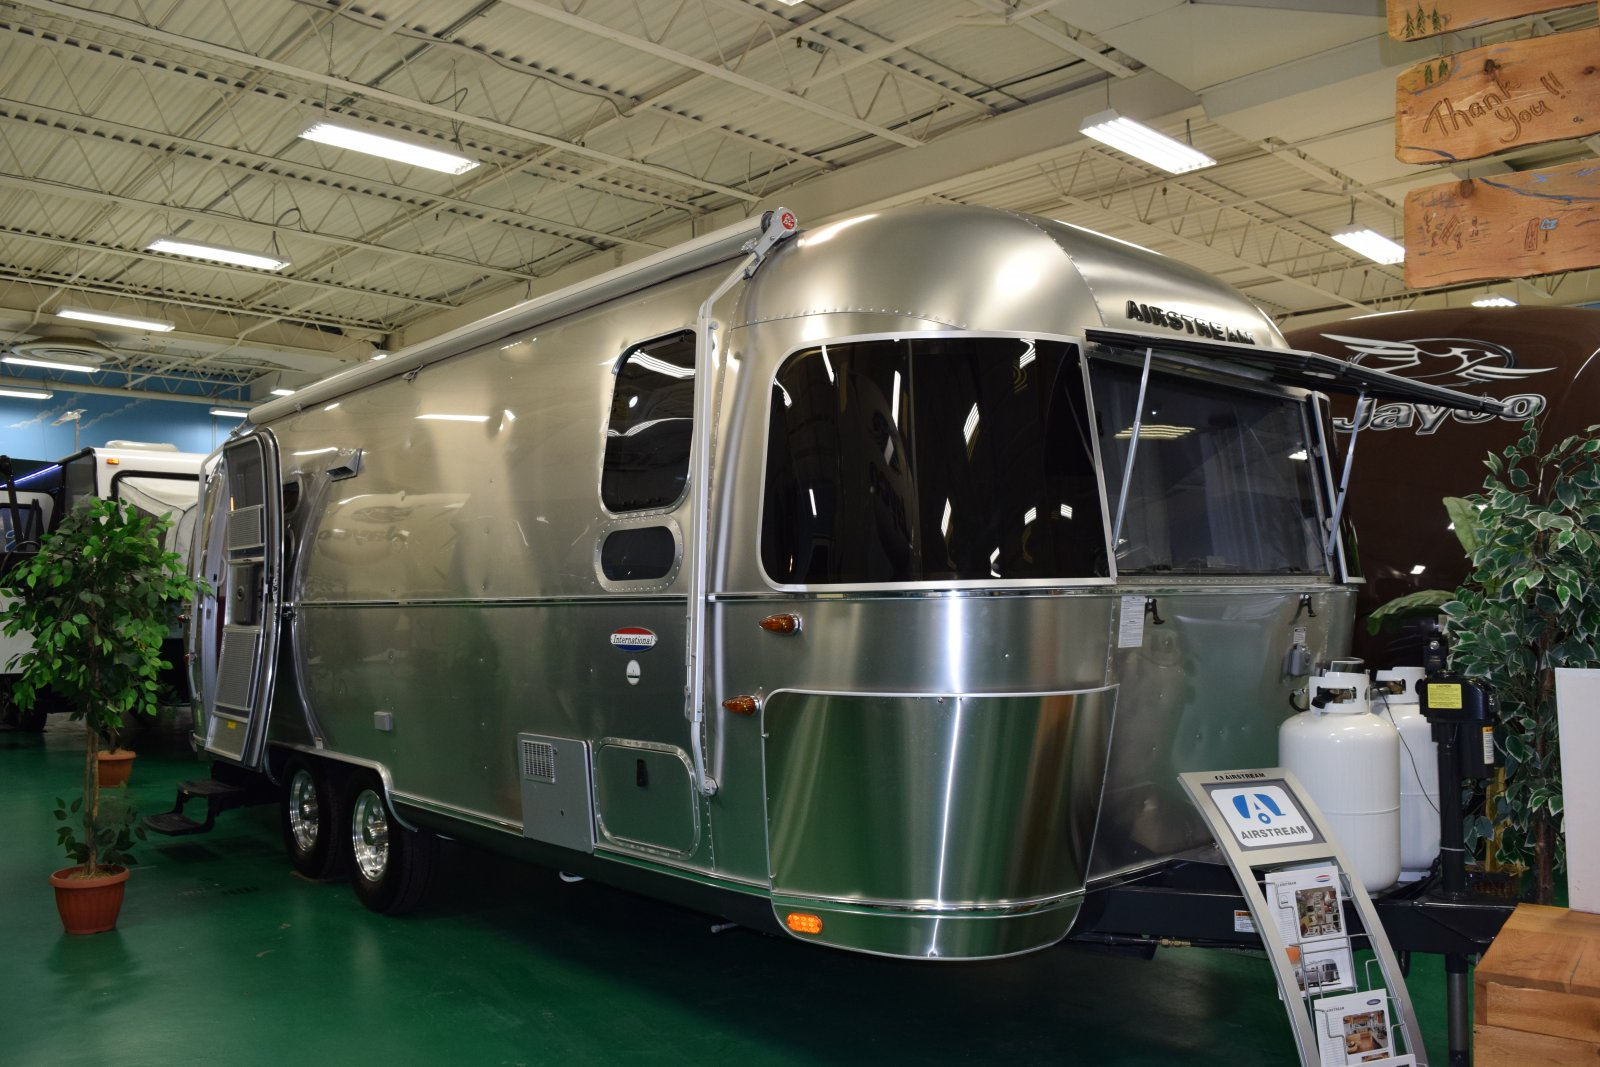 Click image for larger version  Name:Airstream.jpg Views:78 Size:281.4 KB ID:244716